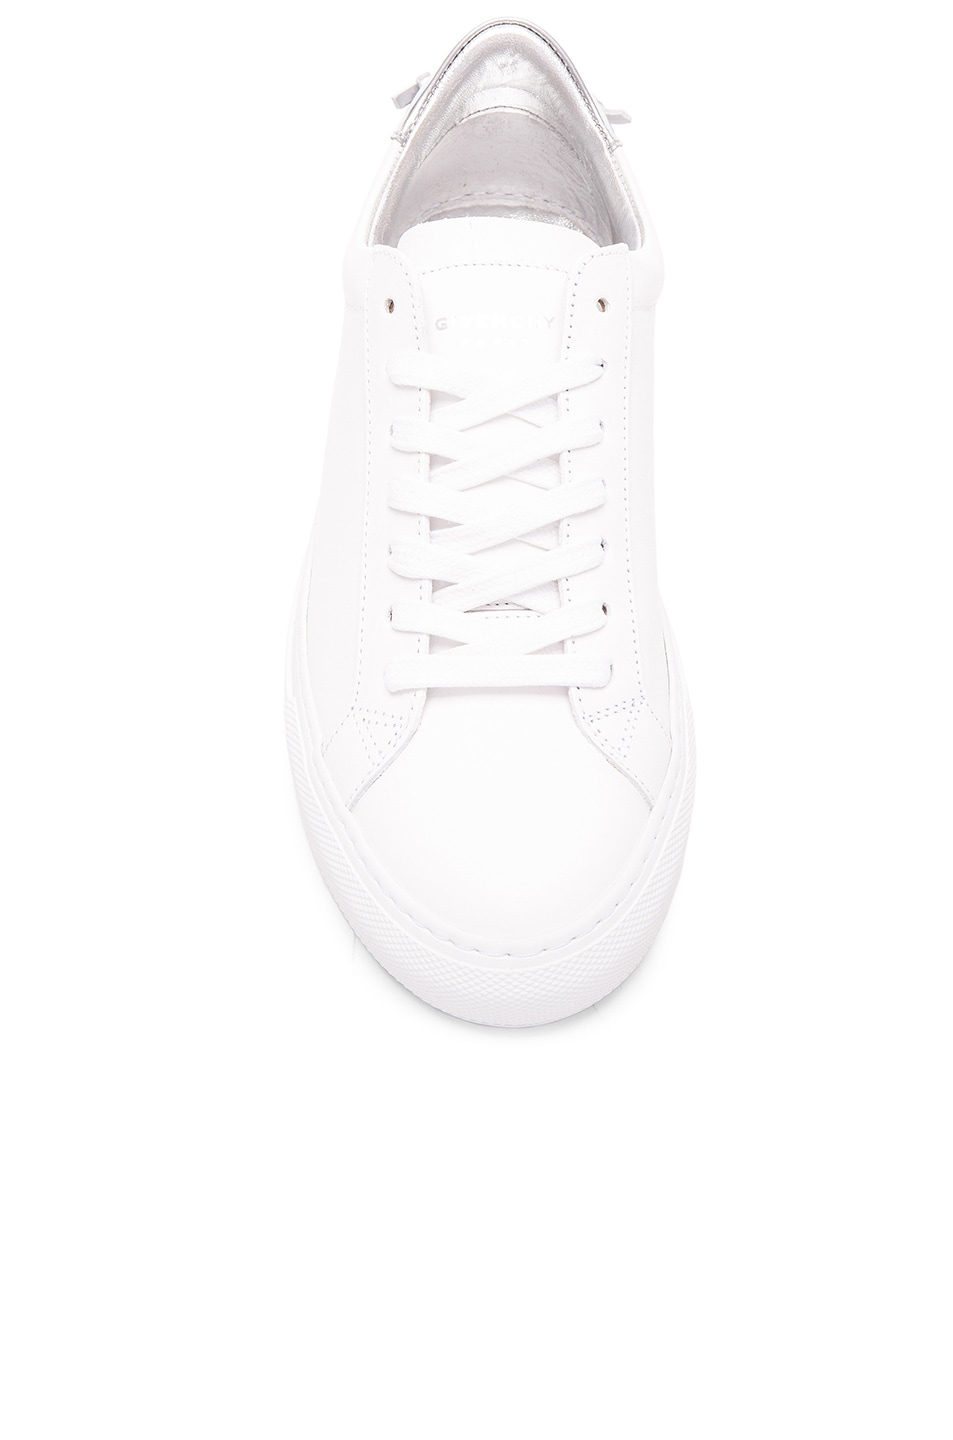 Sneakers Leather Givenchy In Knots Low Urban Whiteamp; SilverFwrd bgY76fyv